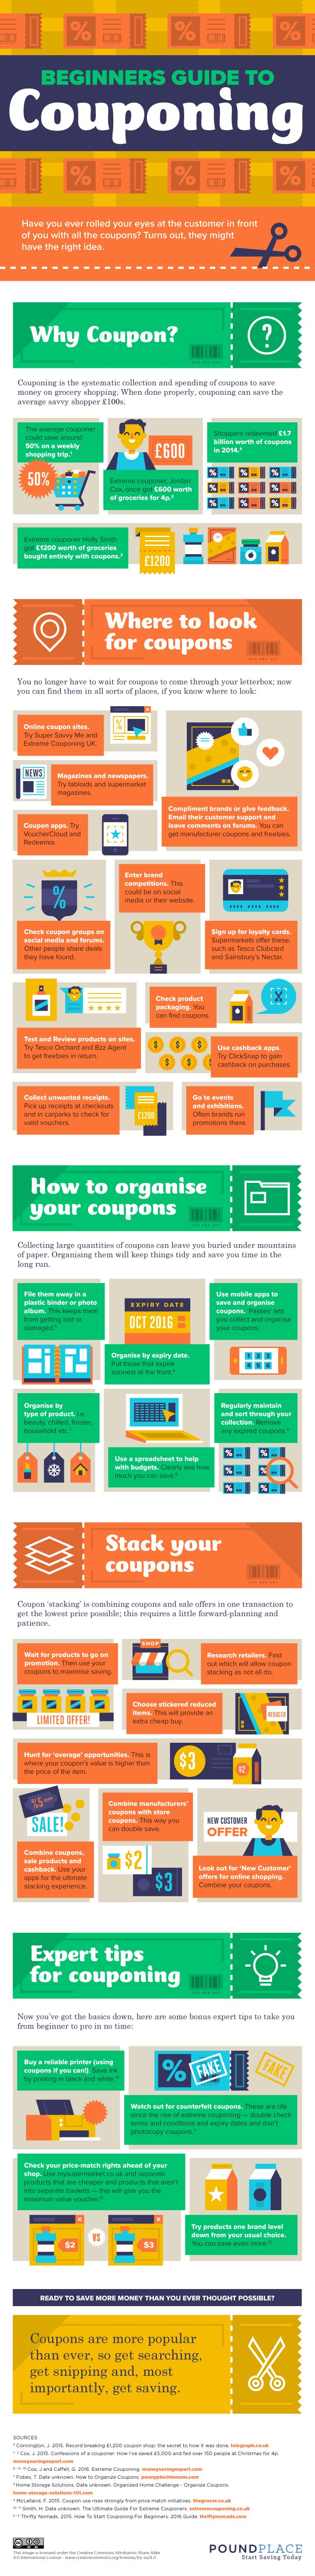 Beginners Guide To Couponing #Infographic #Finance #Money